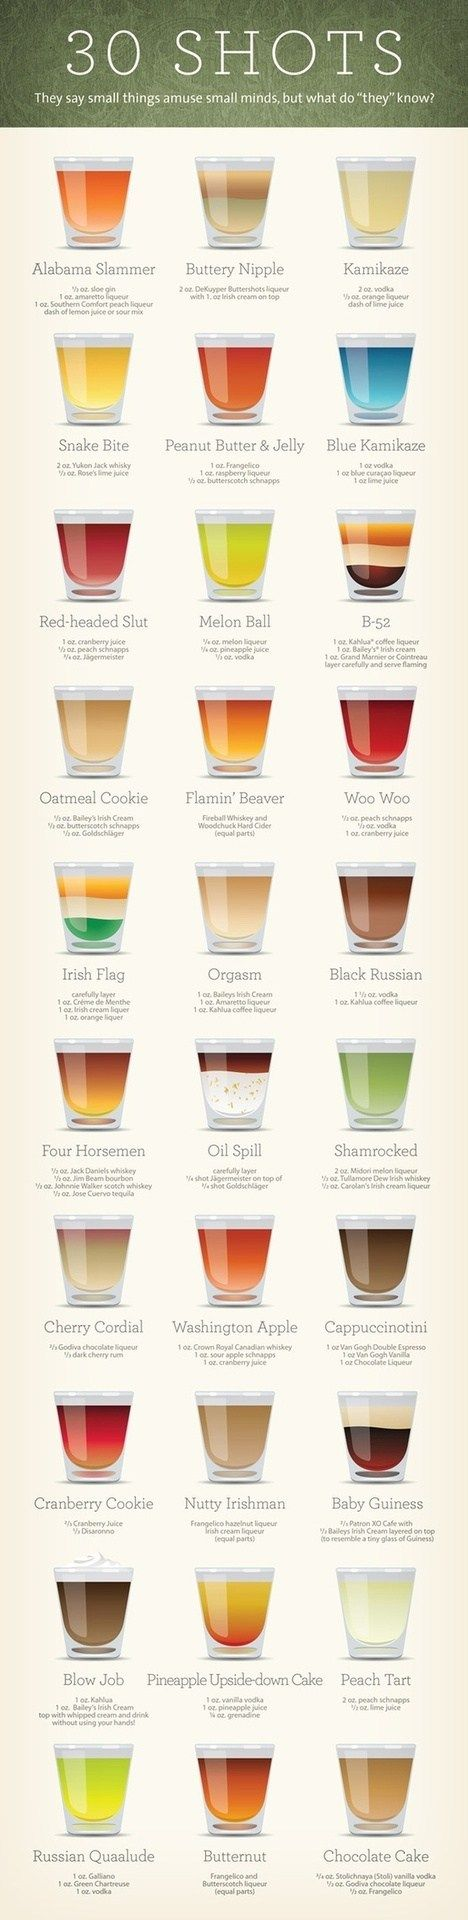 A Crash Course in Shots! I may need this one day!